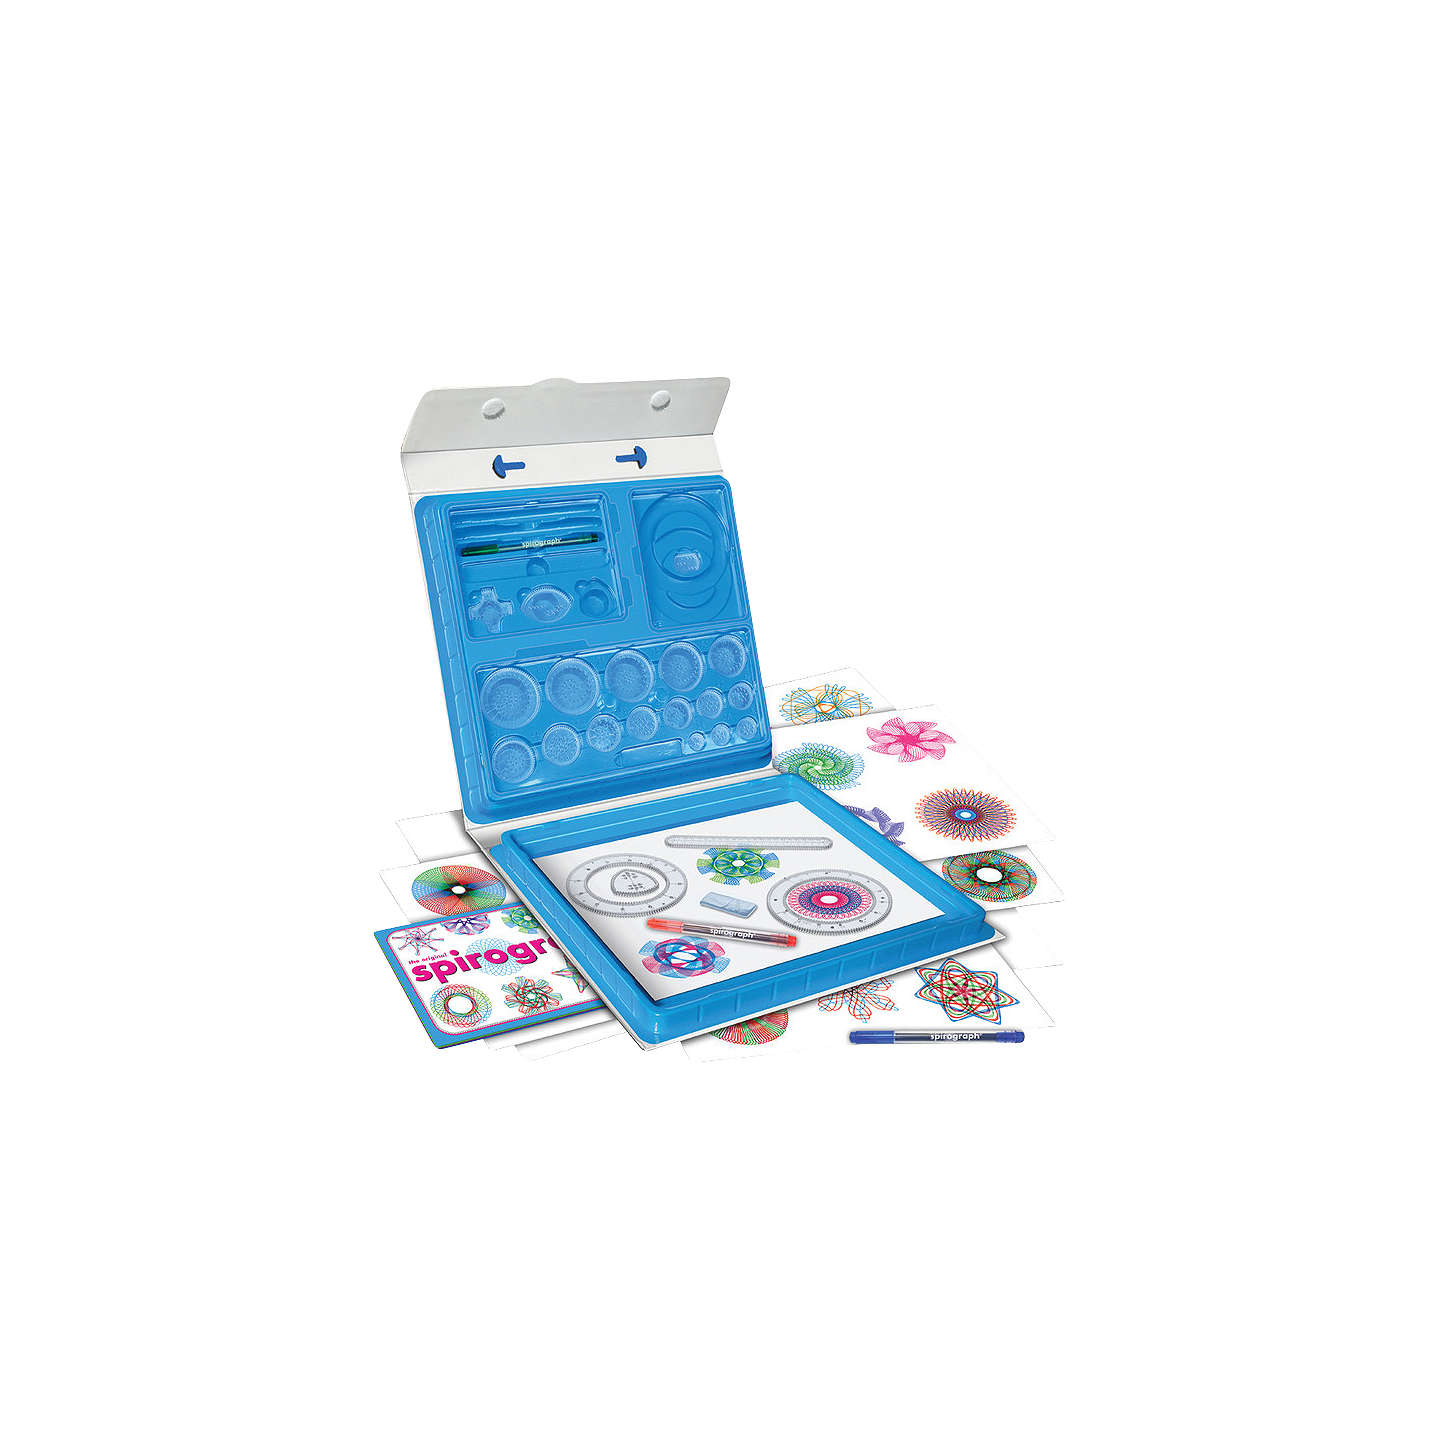 BuyThe Original Spirograph Deluxe Set Online at johnlewis.com